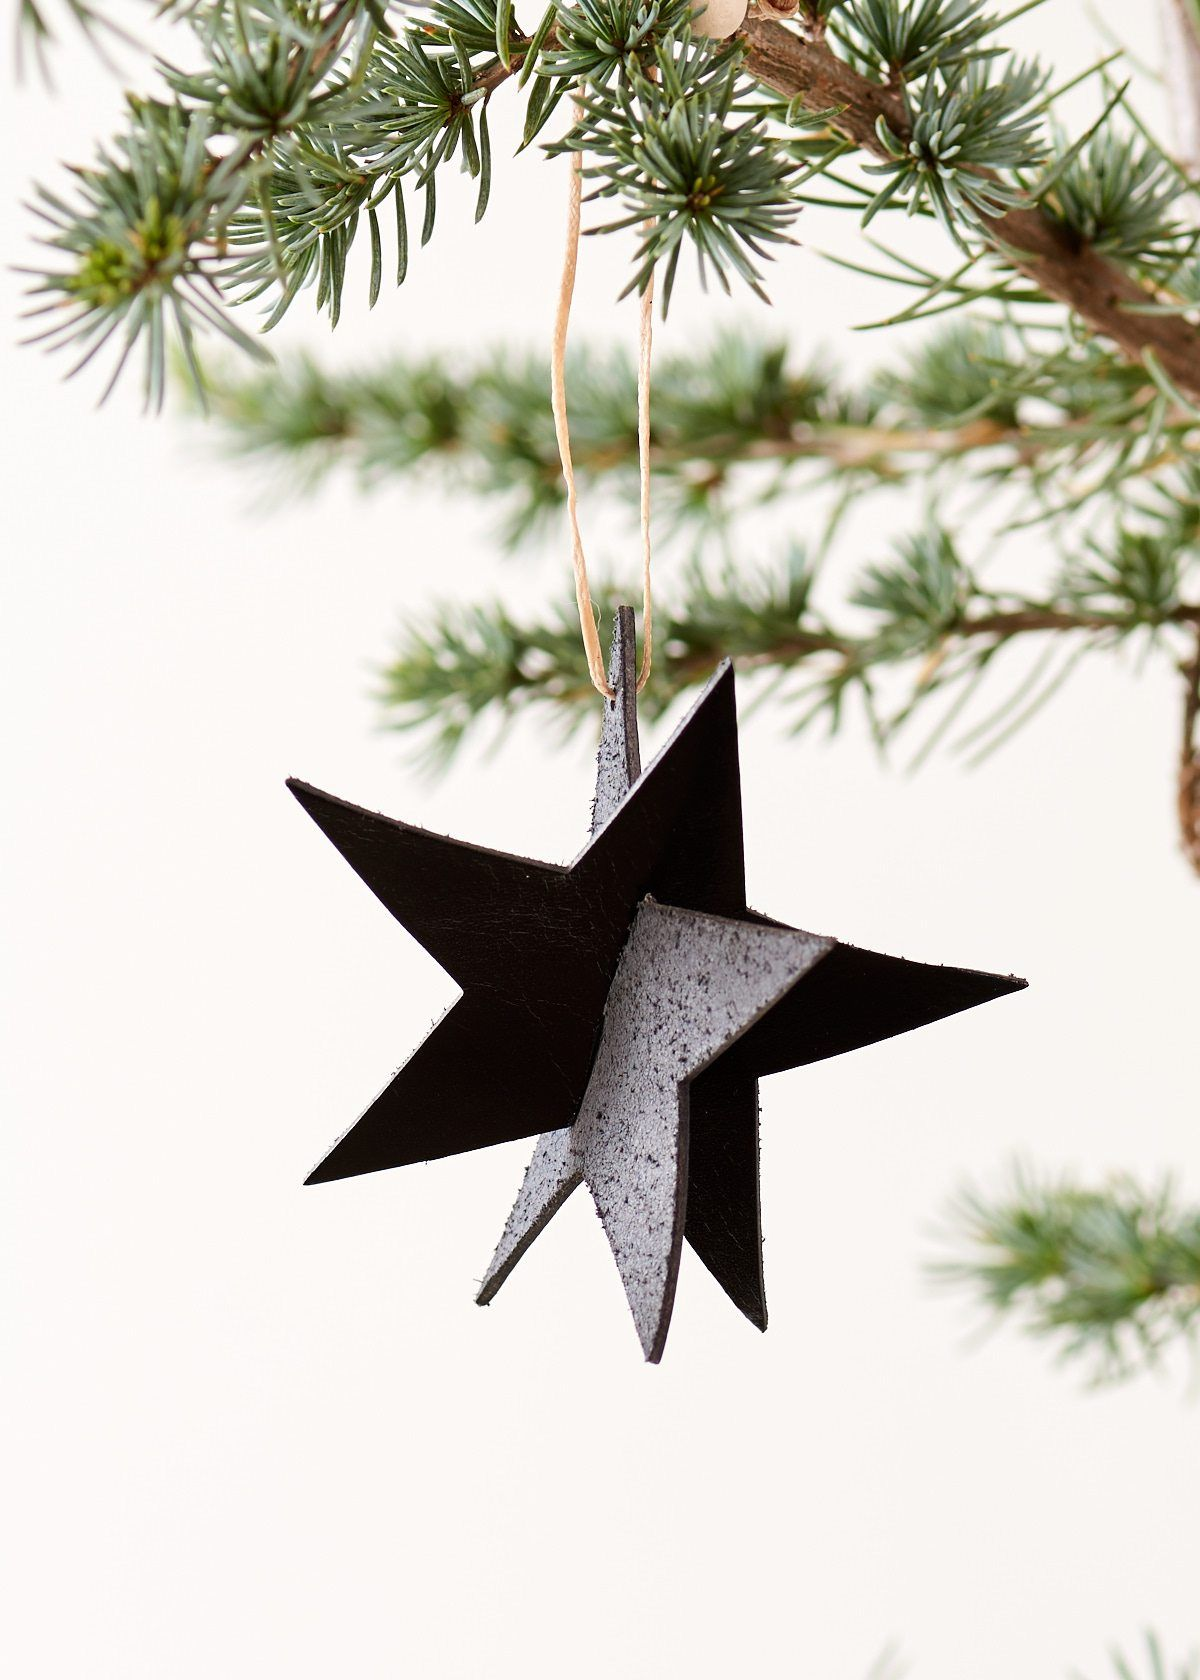 From a collection of christmas ornaments inspired